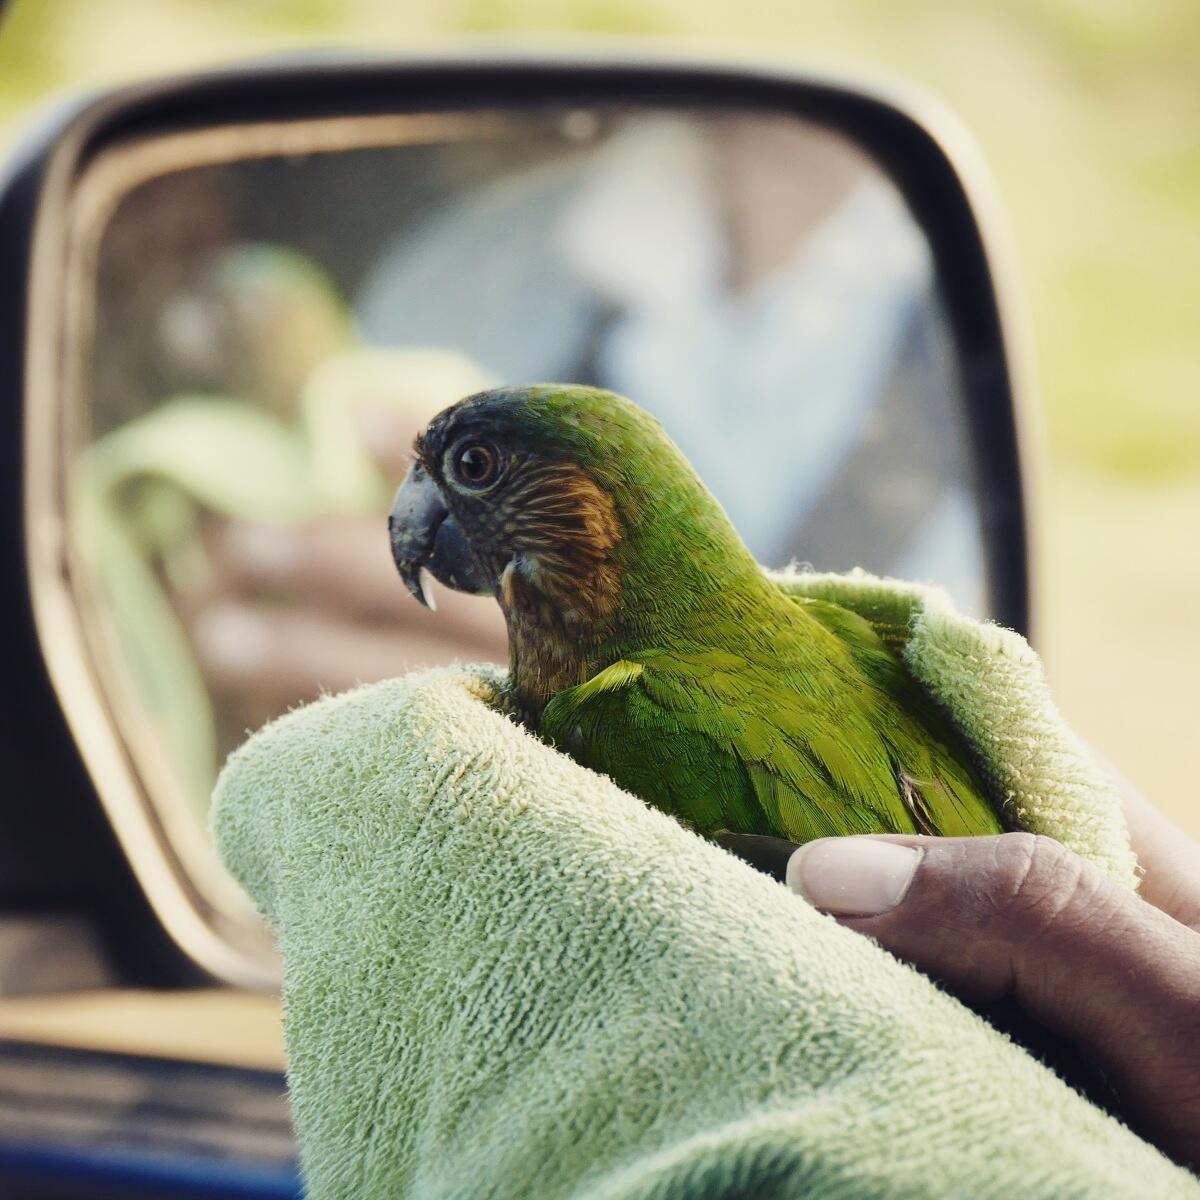 The Brown-throated Parakeet takes in the view on the way to Salamanca, Colombia. Noah Strycker